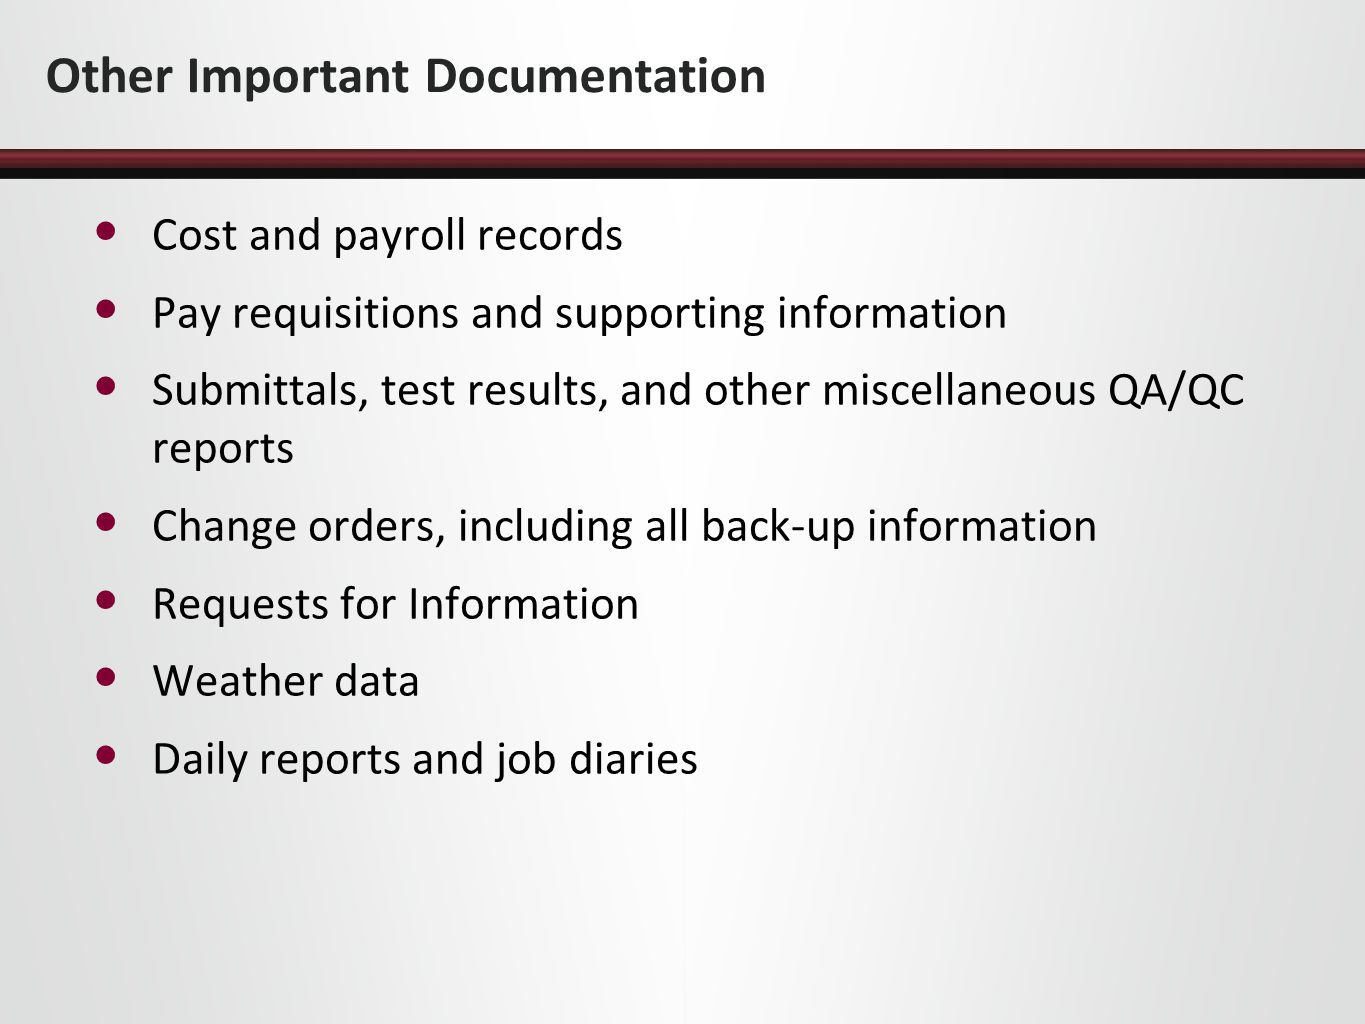 Other Important Documentation Cost and payroll records Pay requisitions and supporting information Submittals, test results, and other miscellaneous Q